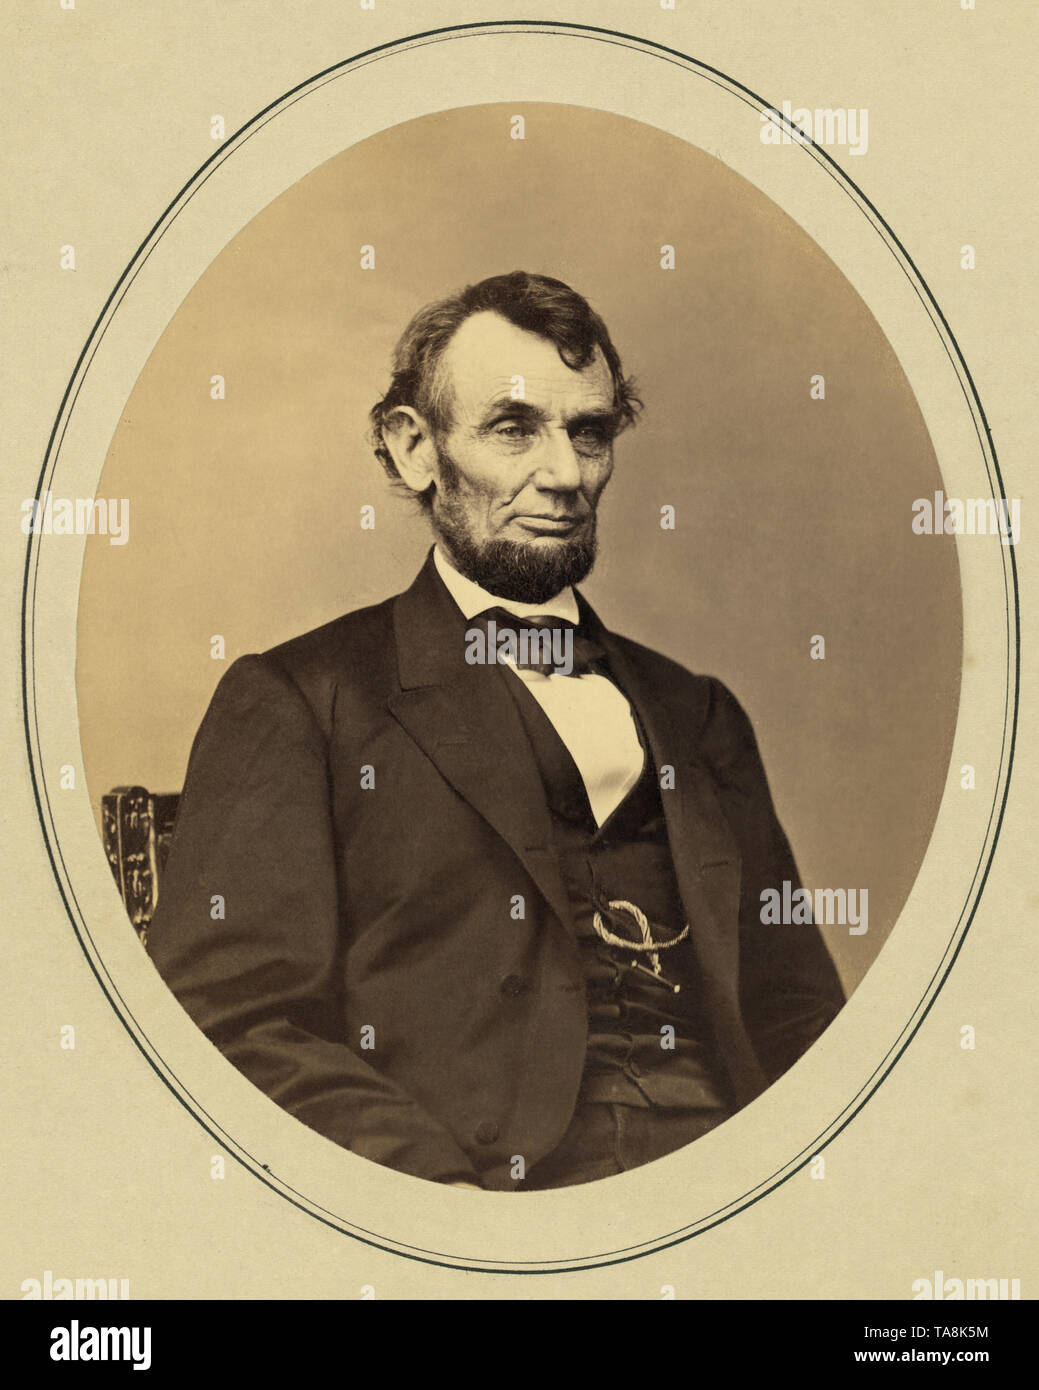 Half-Length Seated Portrait of Abraham Lincoln, Photograph by Anthony Berger, February 9, 1864 - Stock Image